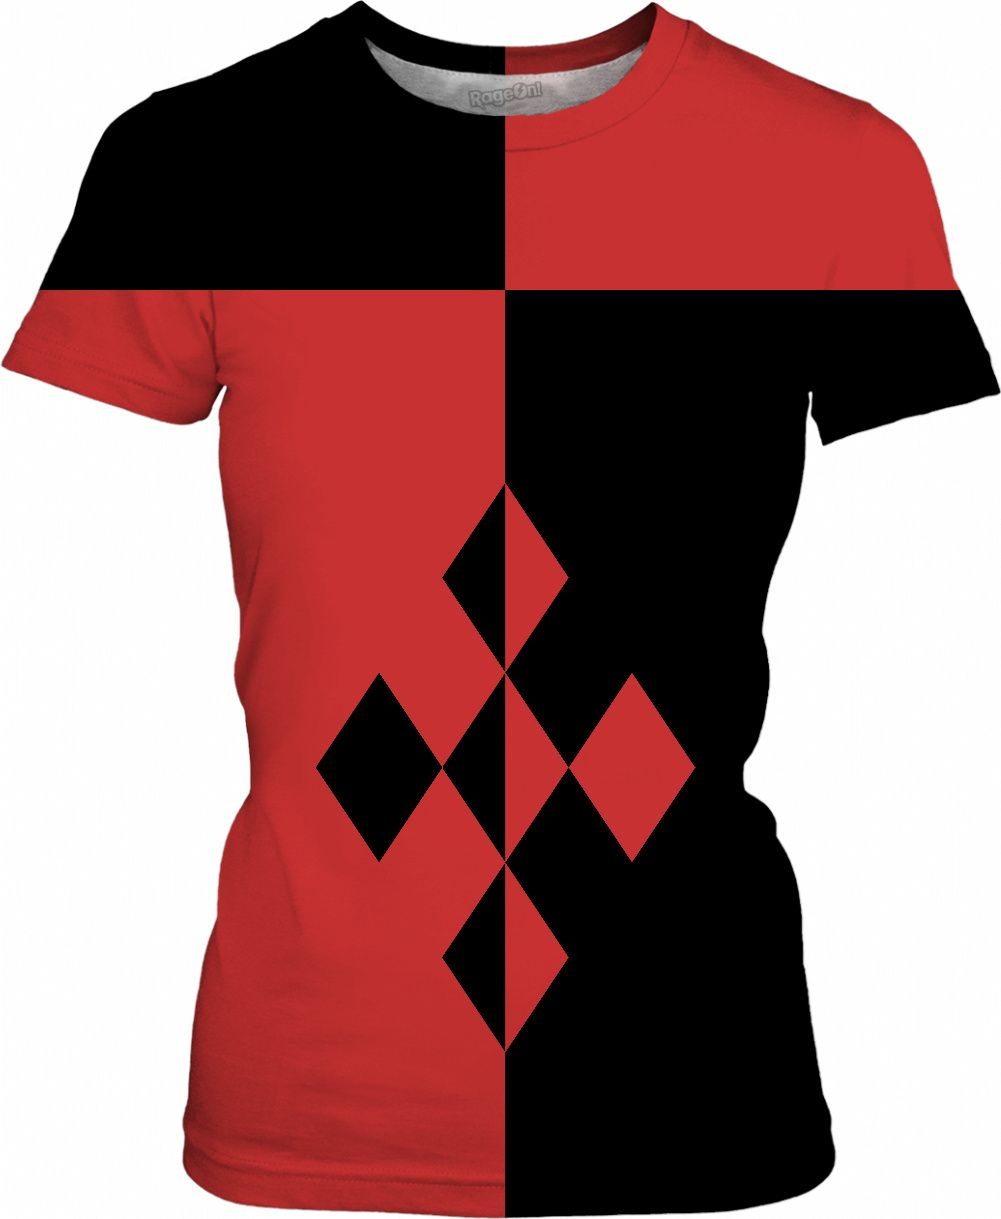 0f1af611 Red and black geometric theme woman tee shirt, Harley Quinn style clothing,  cosplay apparel, Joker's girl - for more art and design be sure to visit ...